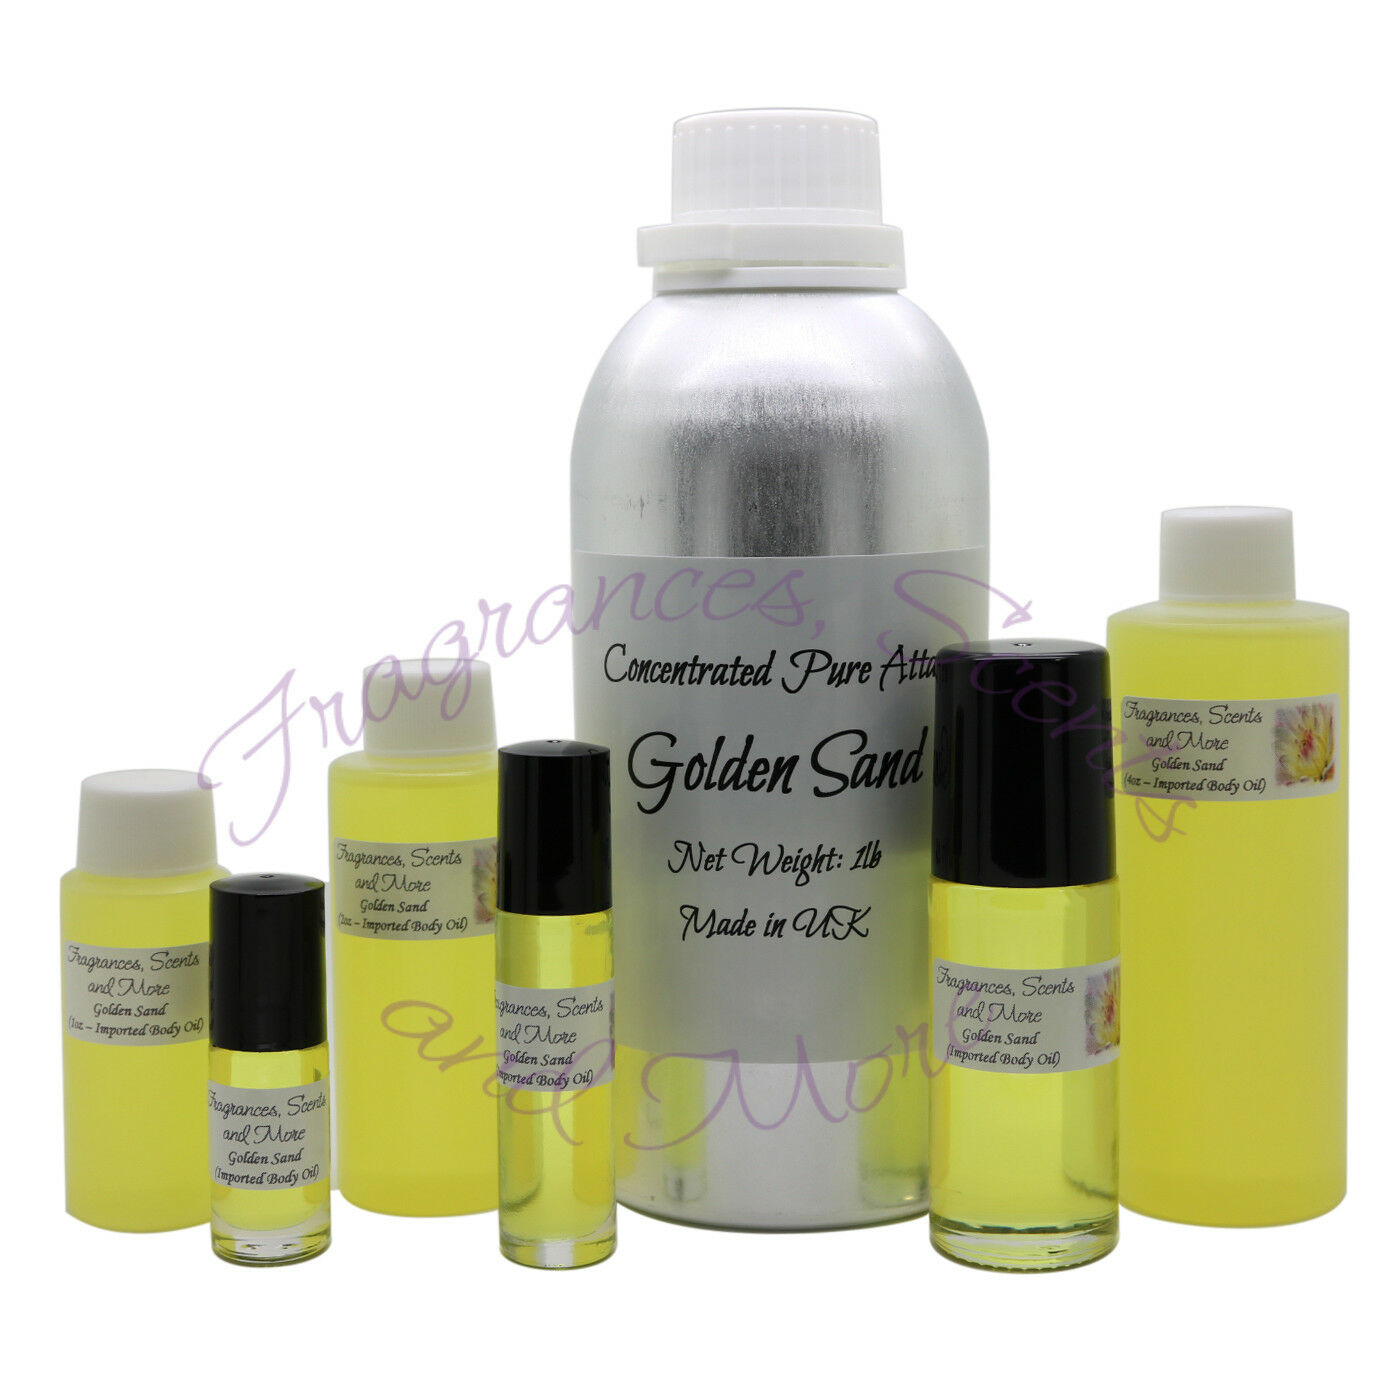 golden sand concentrated pure attar imported body